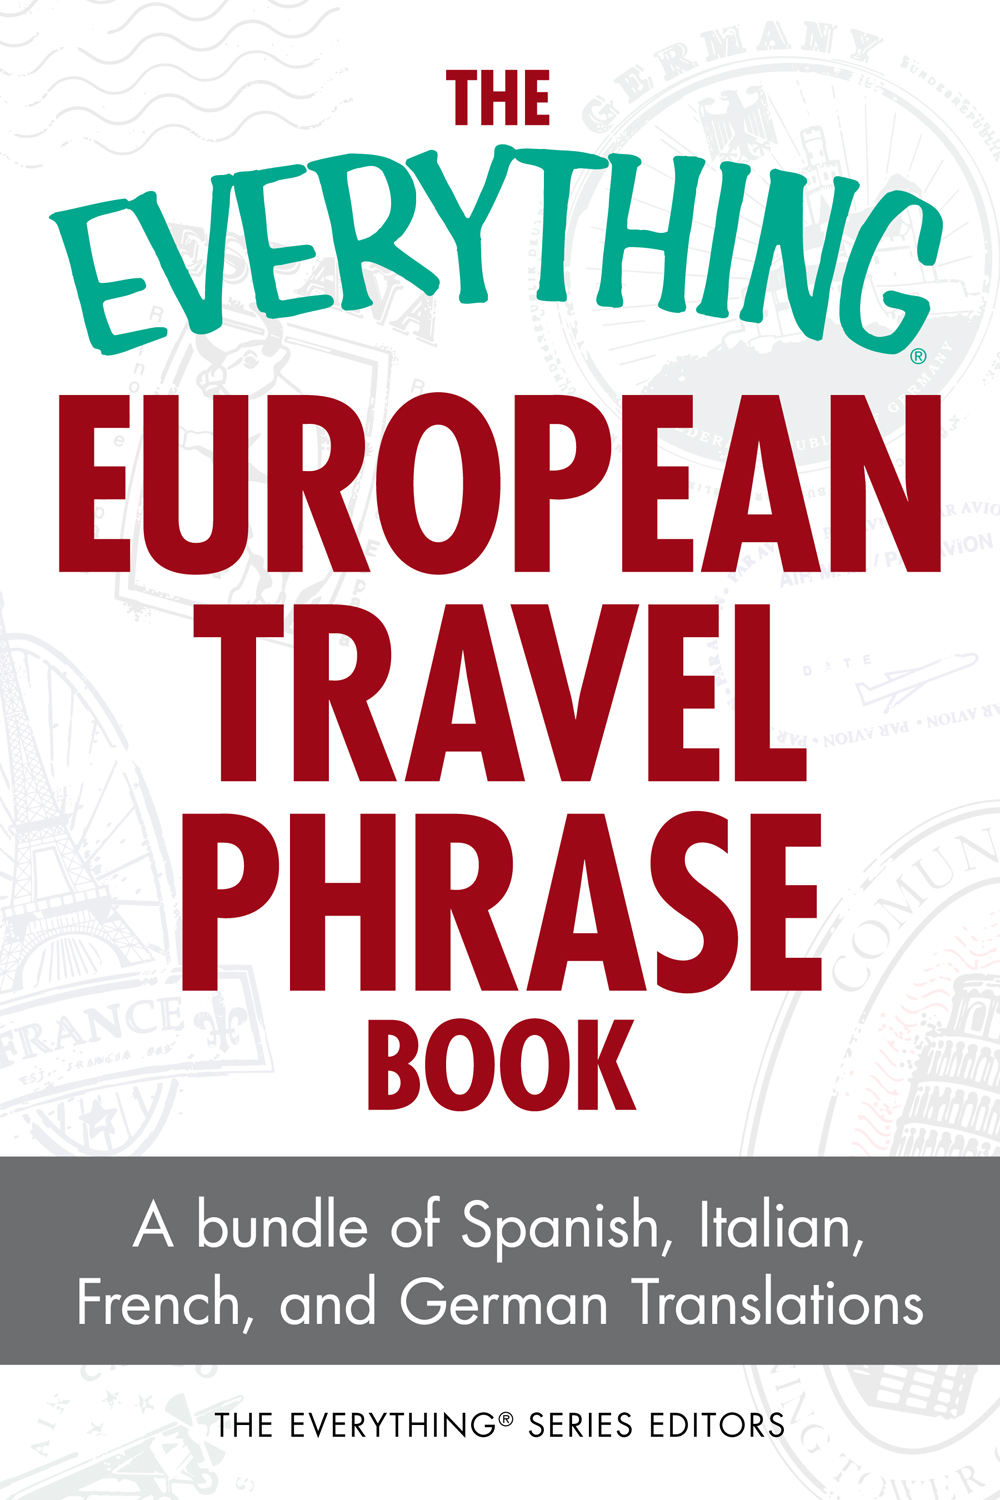 The Everything European Travel Phrase Book A Bundle of Spanish,  Italian,  French,  and German Translations